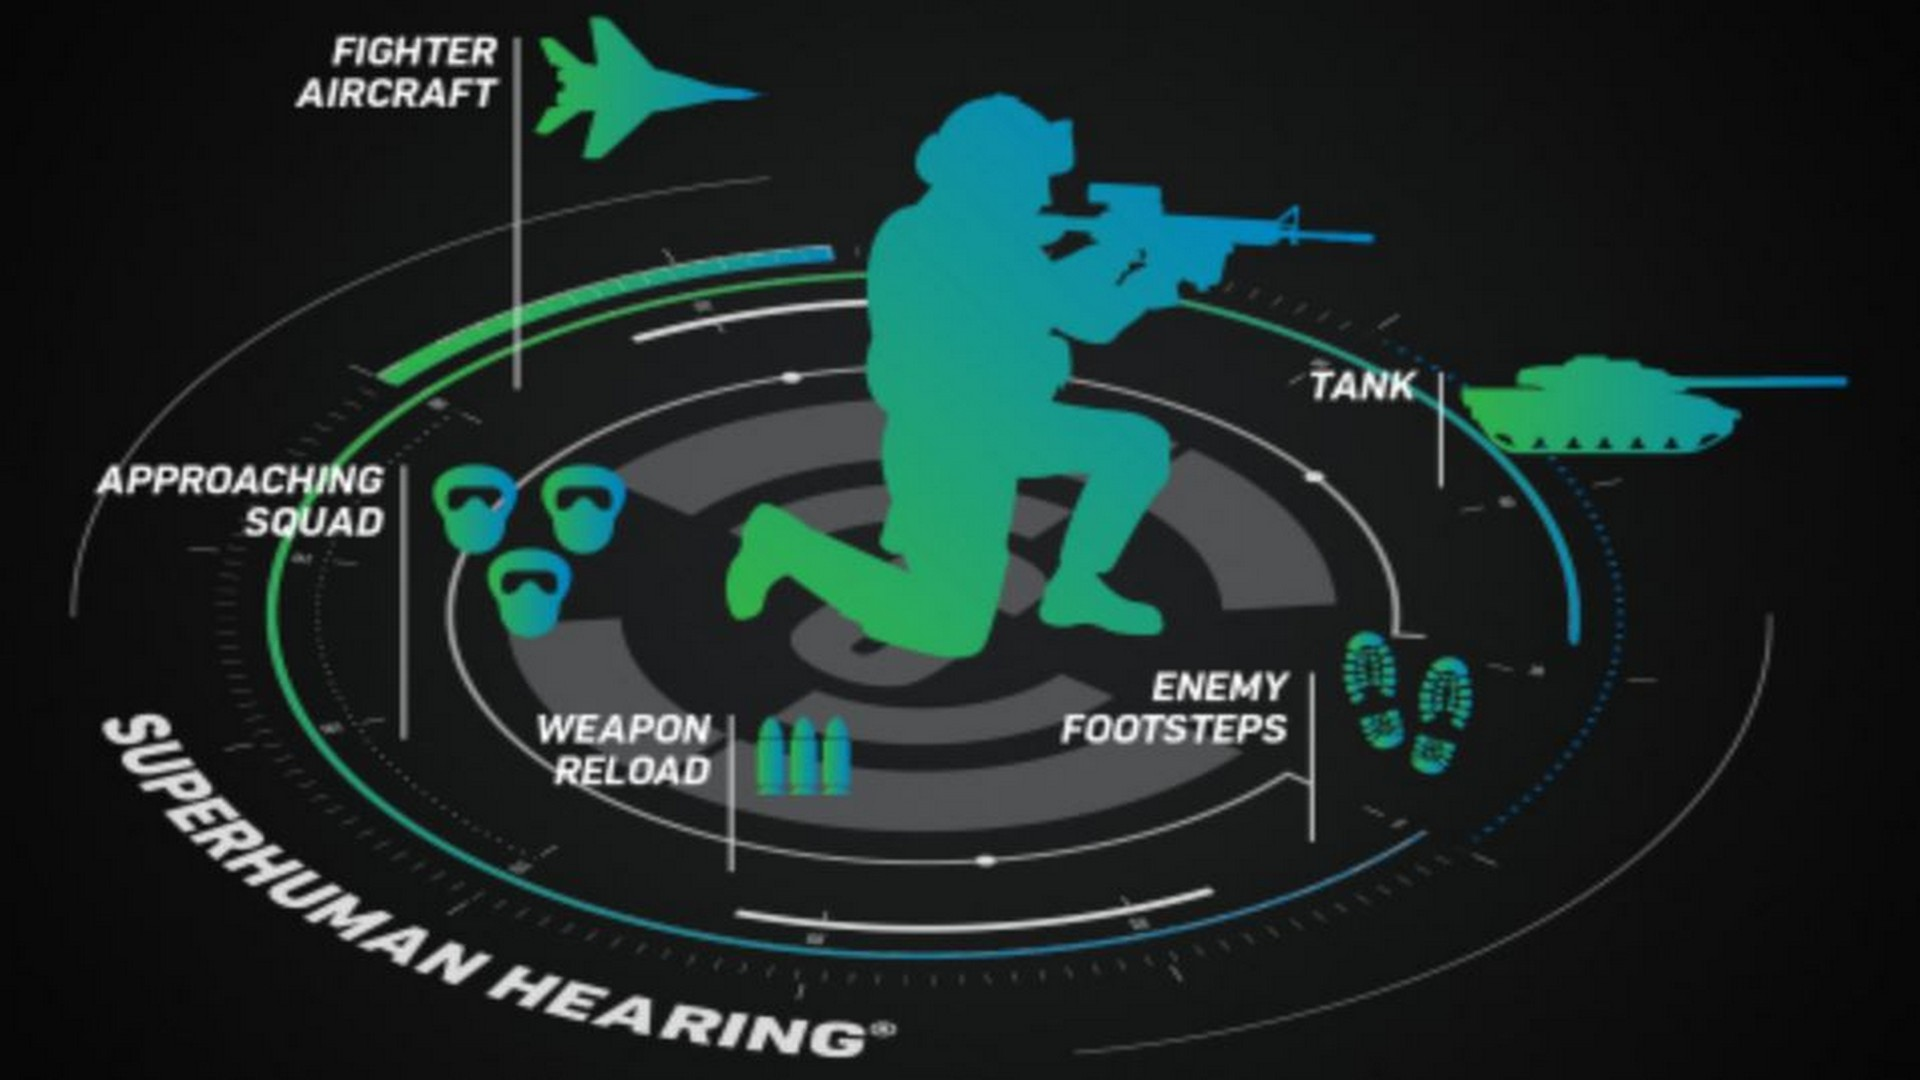 Turtle Beach's Superhuman Hearing Setting Proven To Improve Gaming Performance